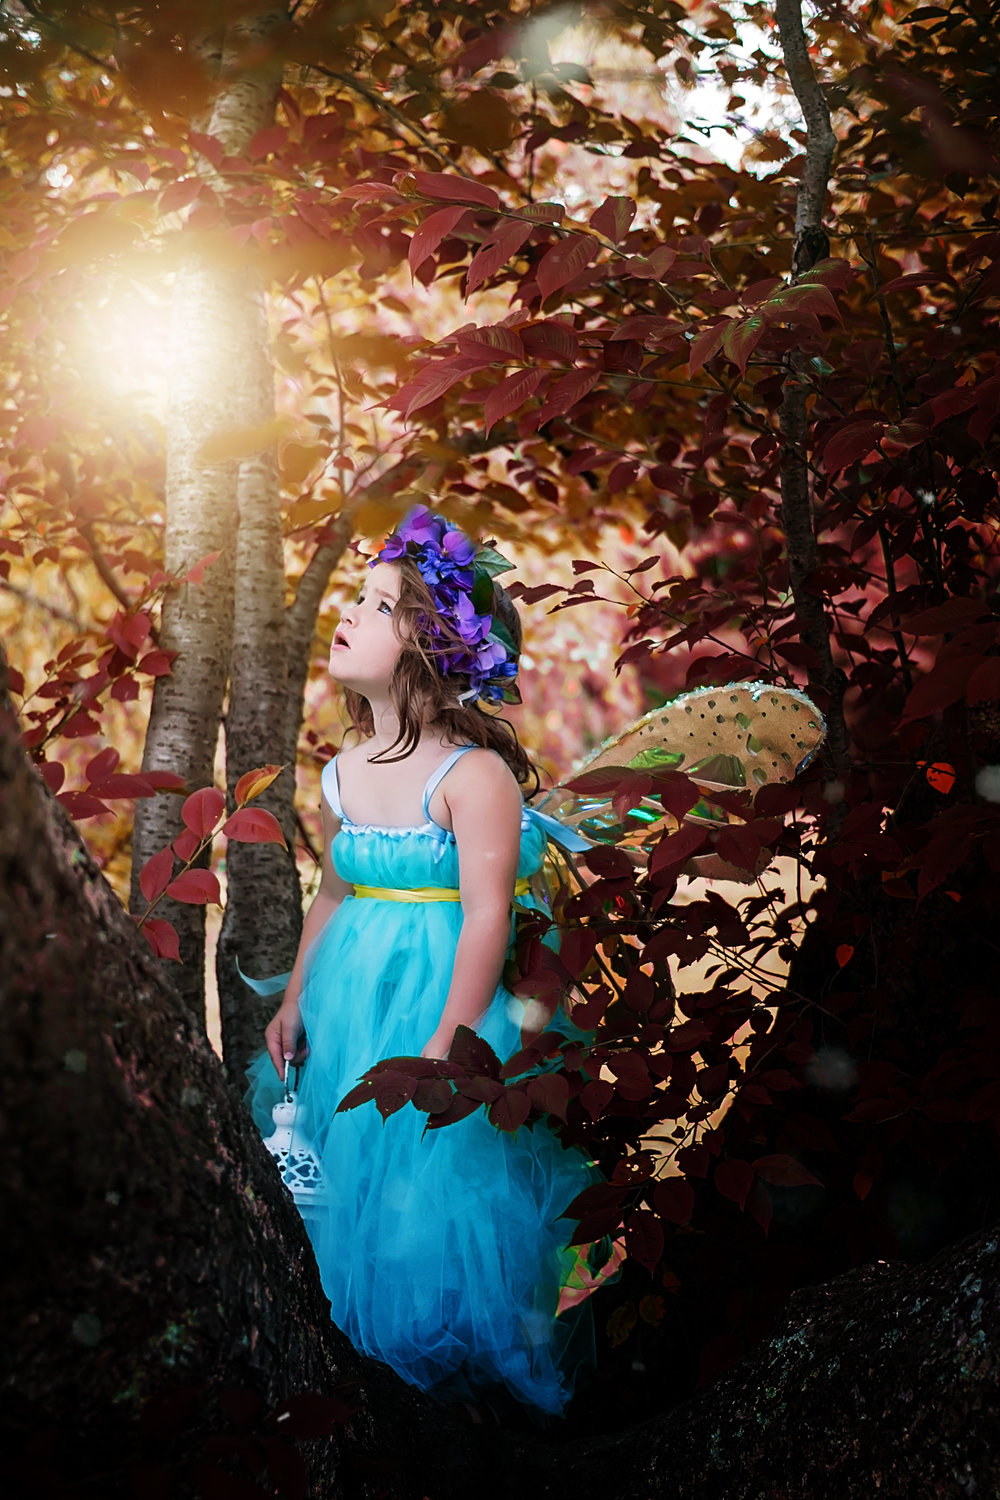 Cincinnati Photographer turns little girls dream into amazing images you have to see!